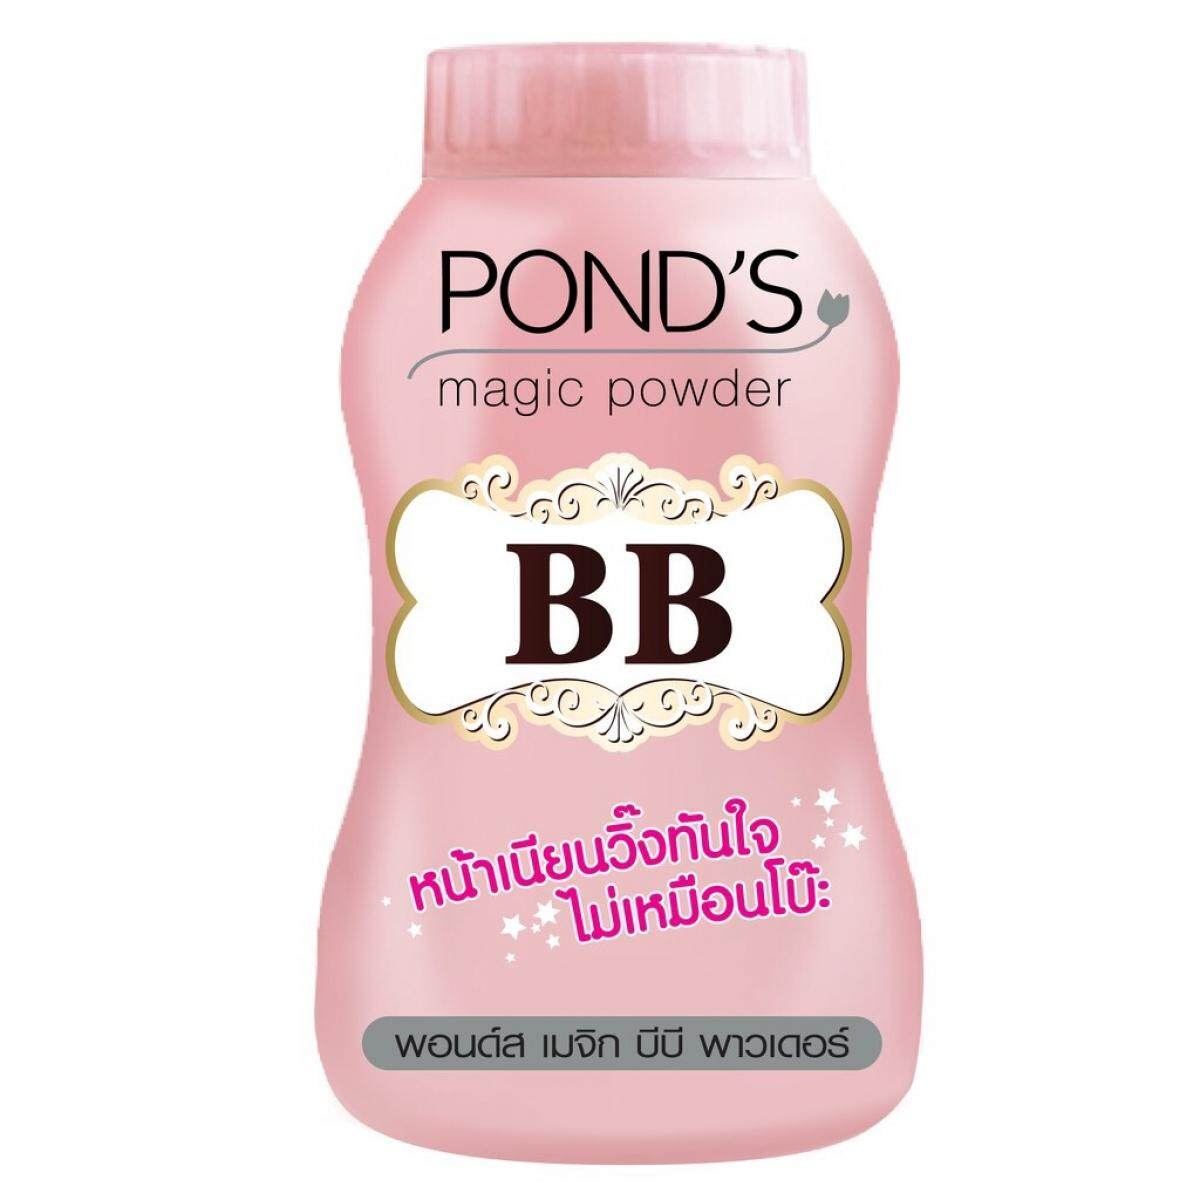 Pond's Bb Magic Powder/face Powder (50g) By Mari & Billy.